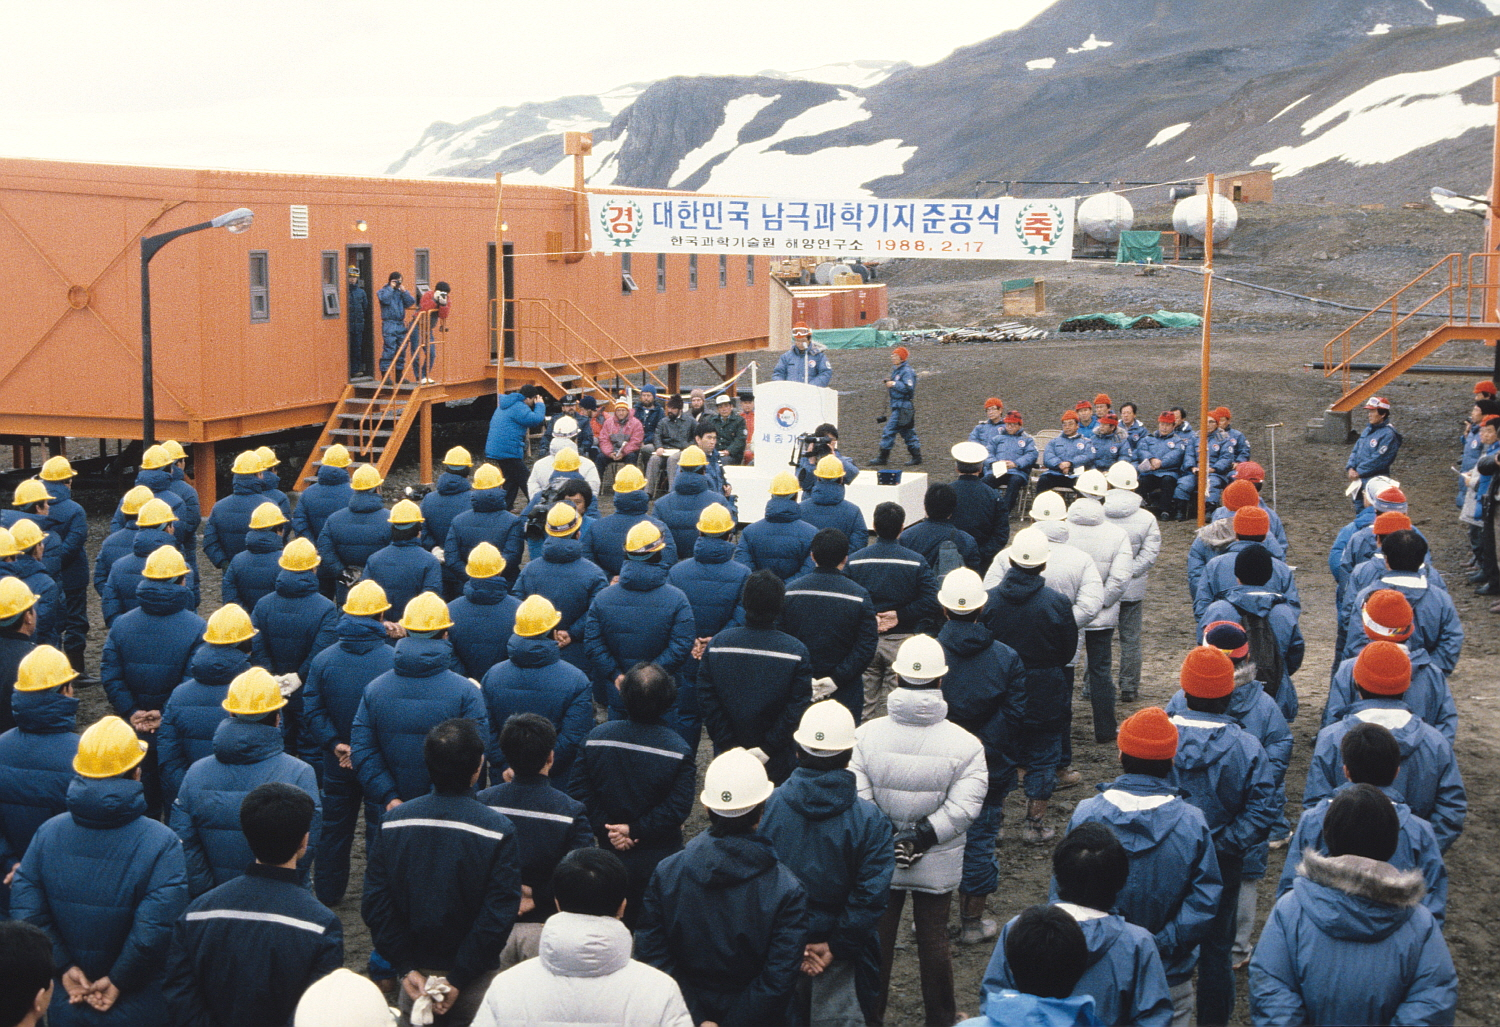 Inauguration of the Antarctic King Sejong Station